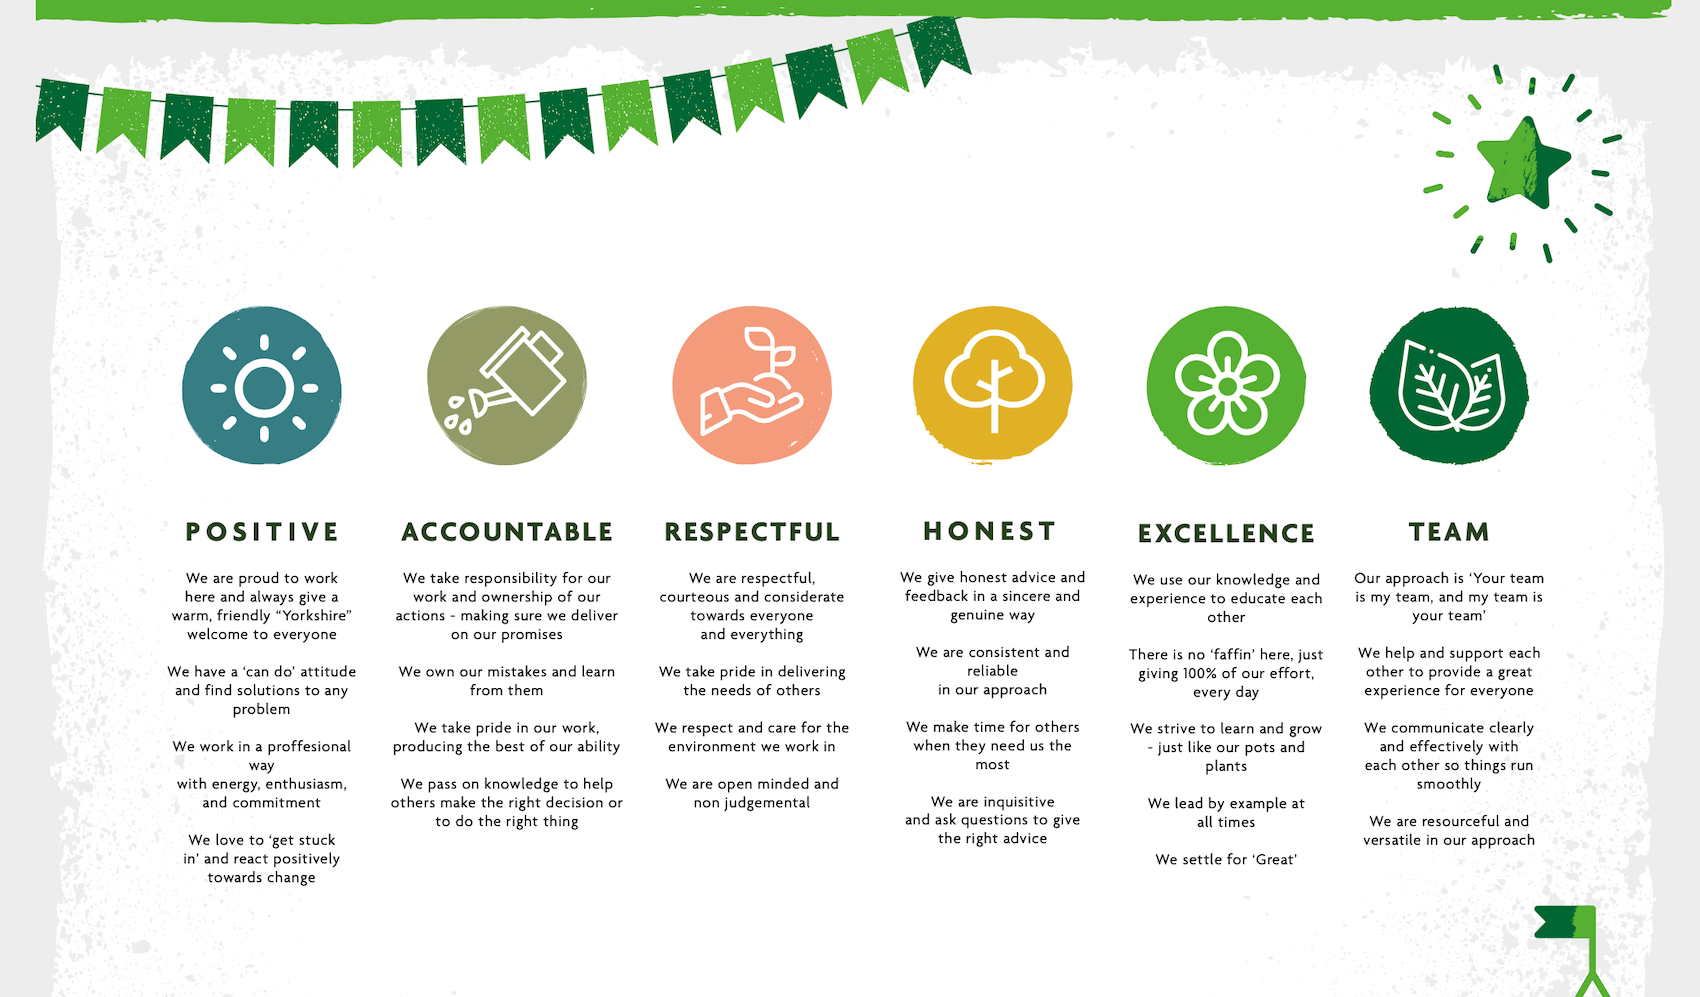 Image showing Togn Garden Centre's company values with icons and descriptions